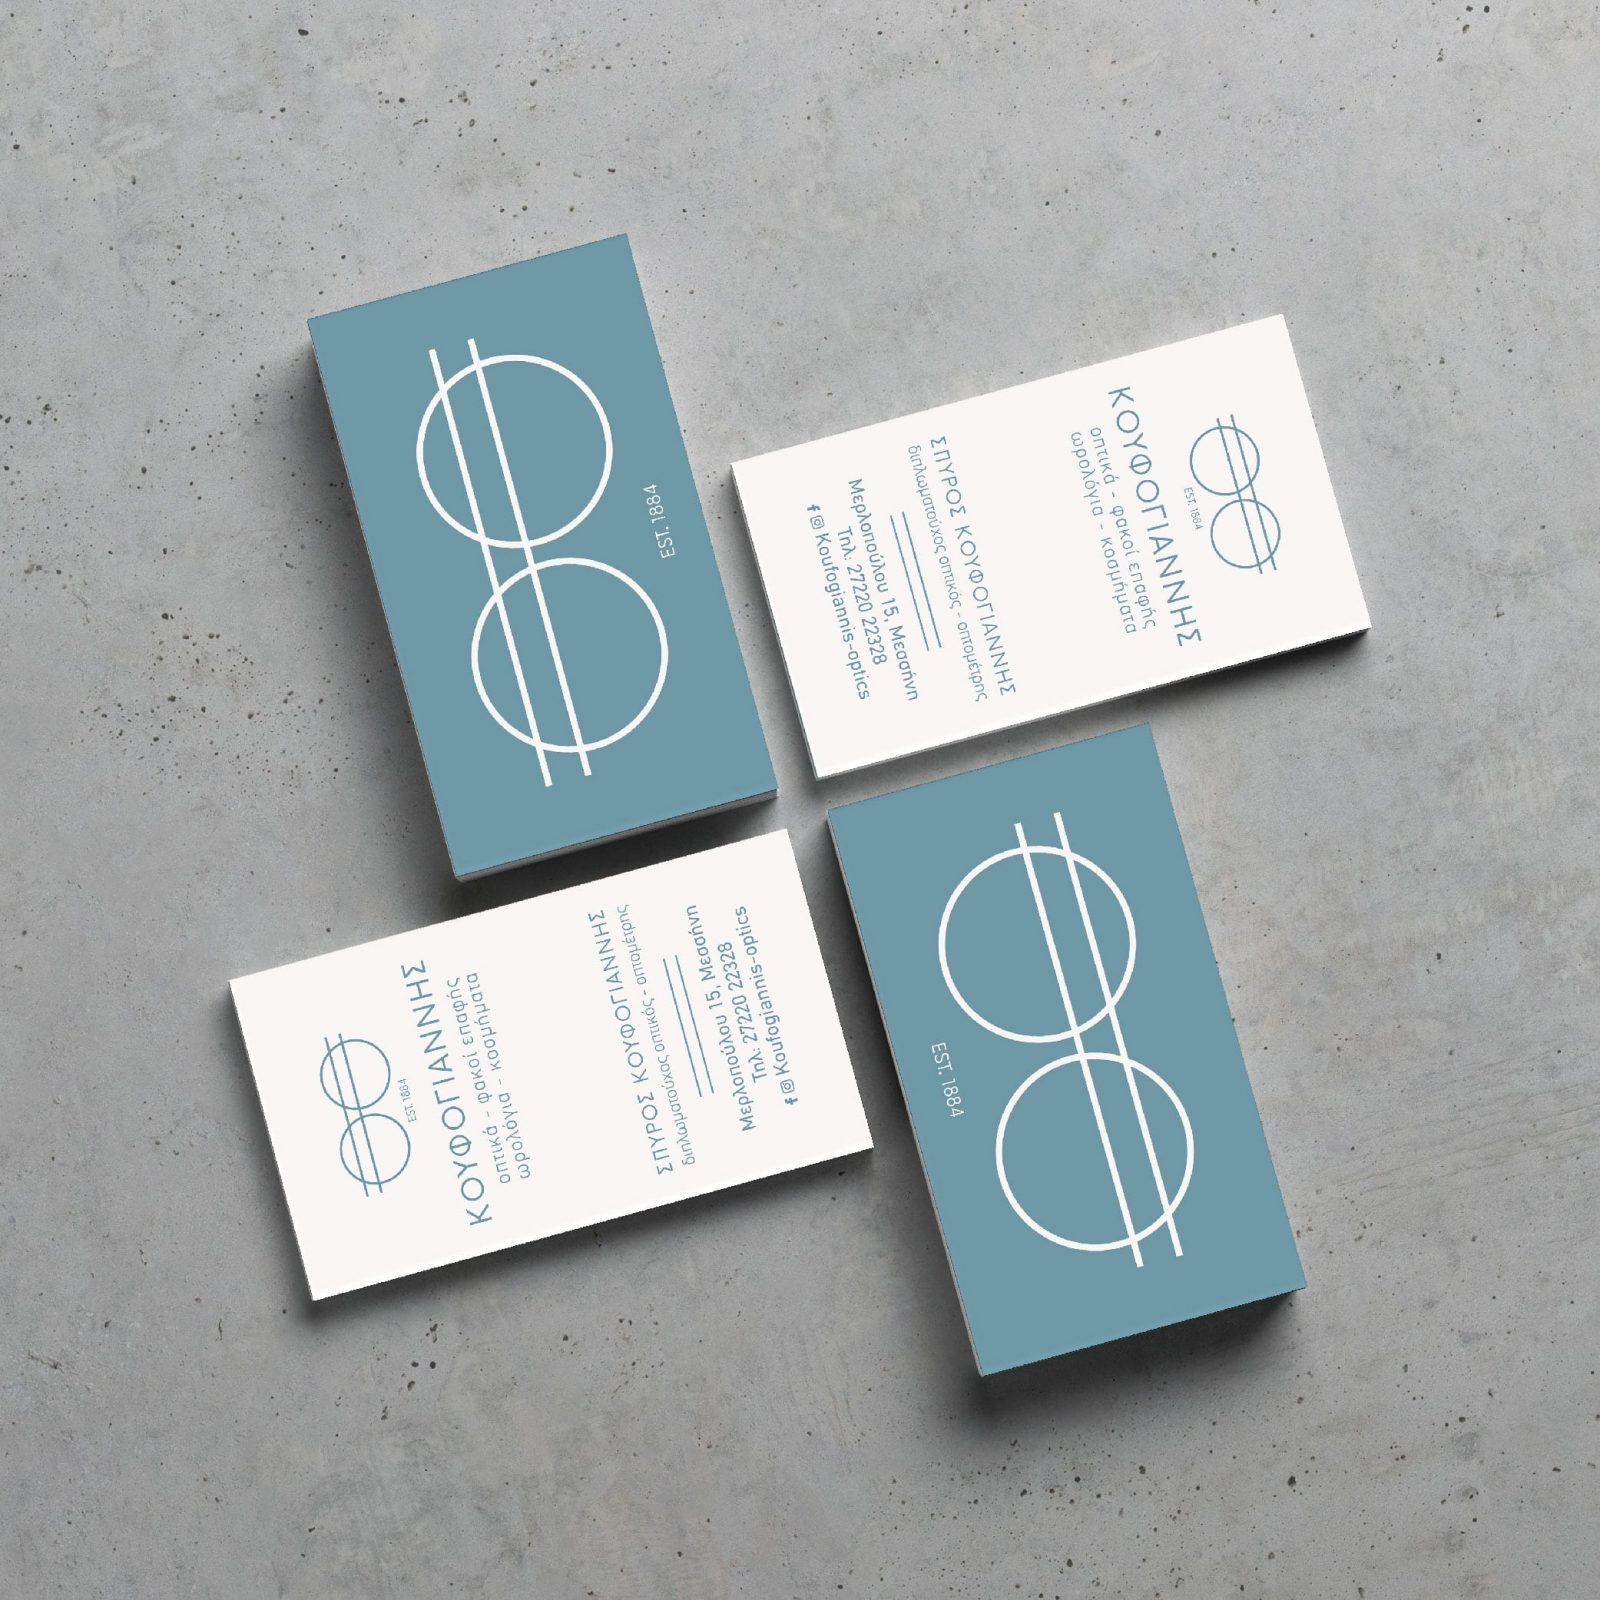 Minimal Brand and Packaging for Optic Store